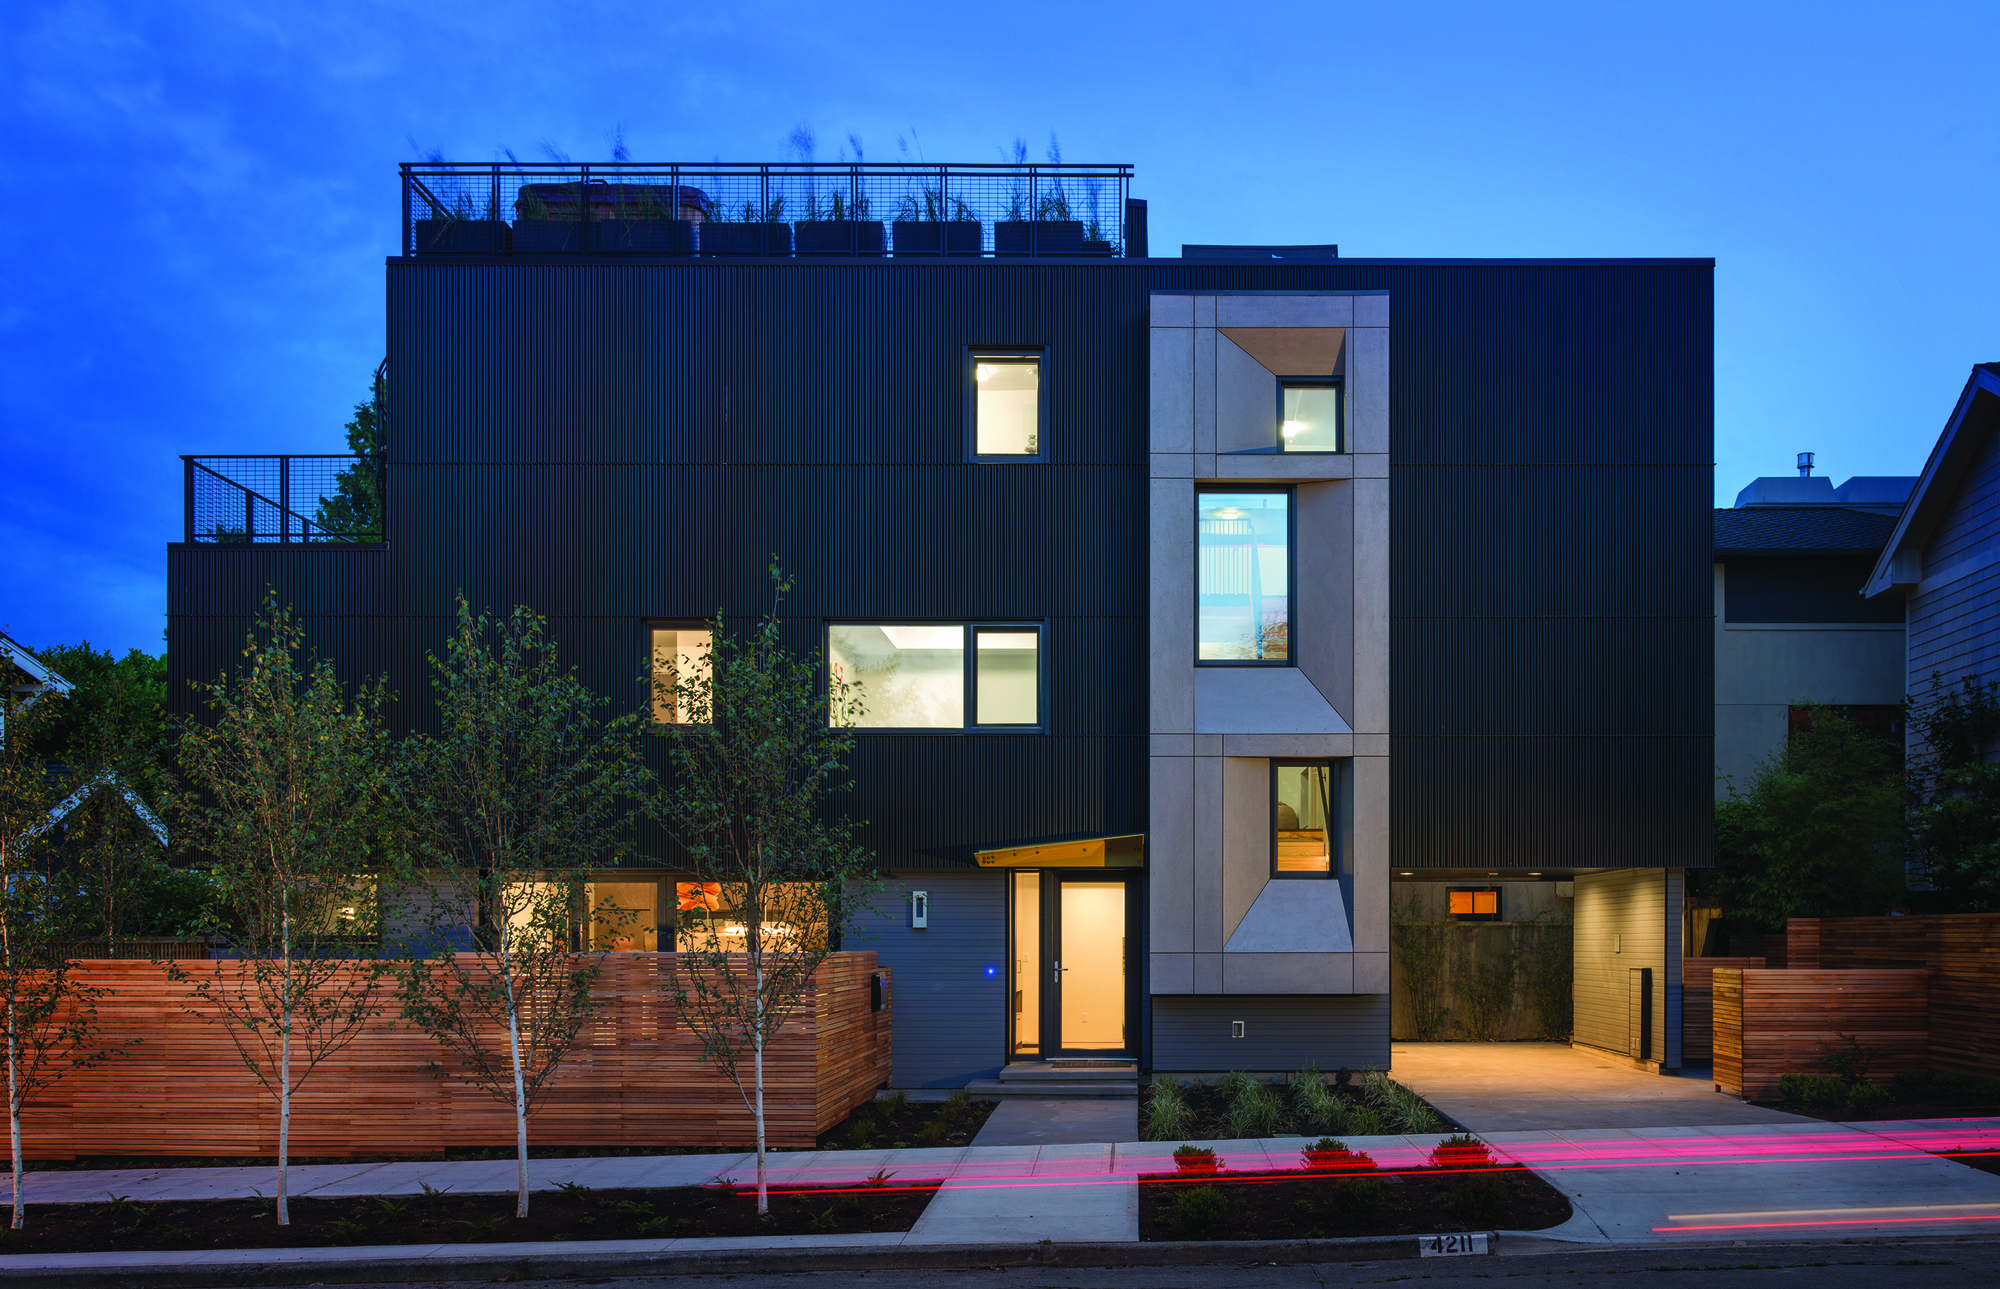 Park Passive House / NK Architects, © Aaron Leitz